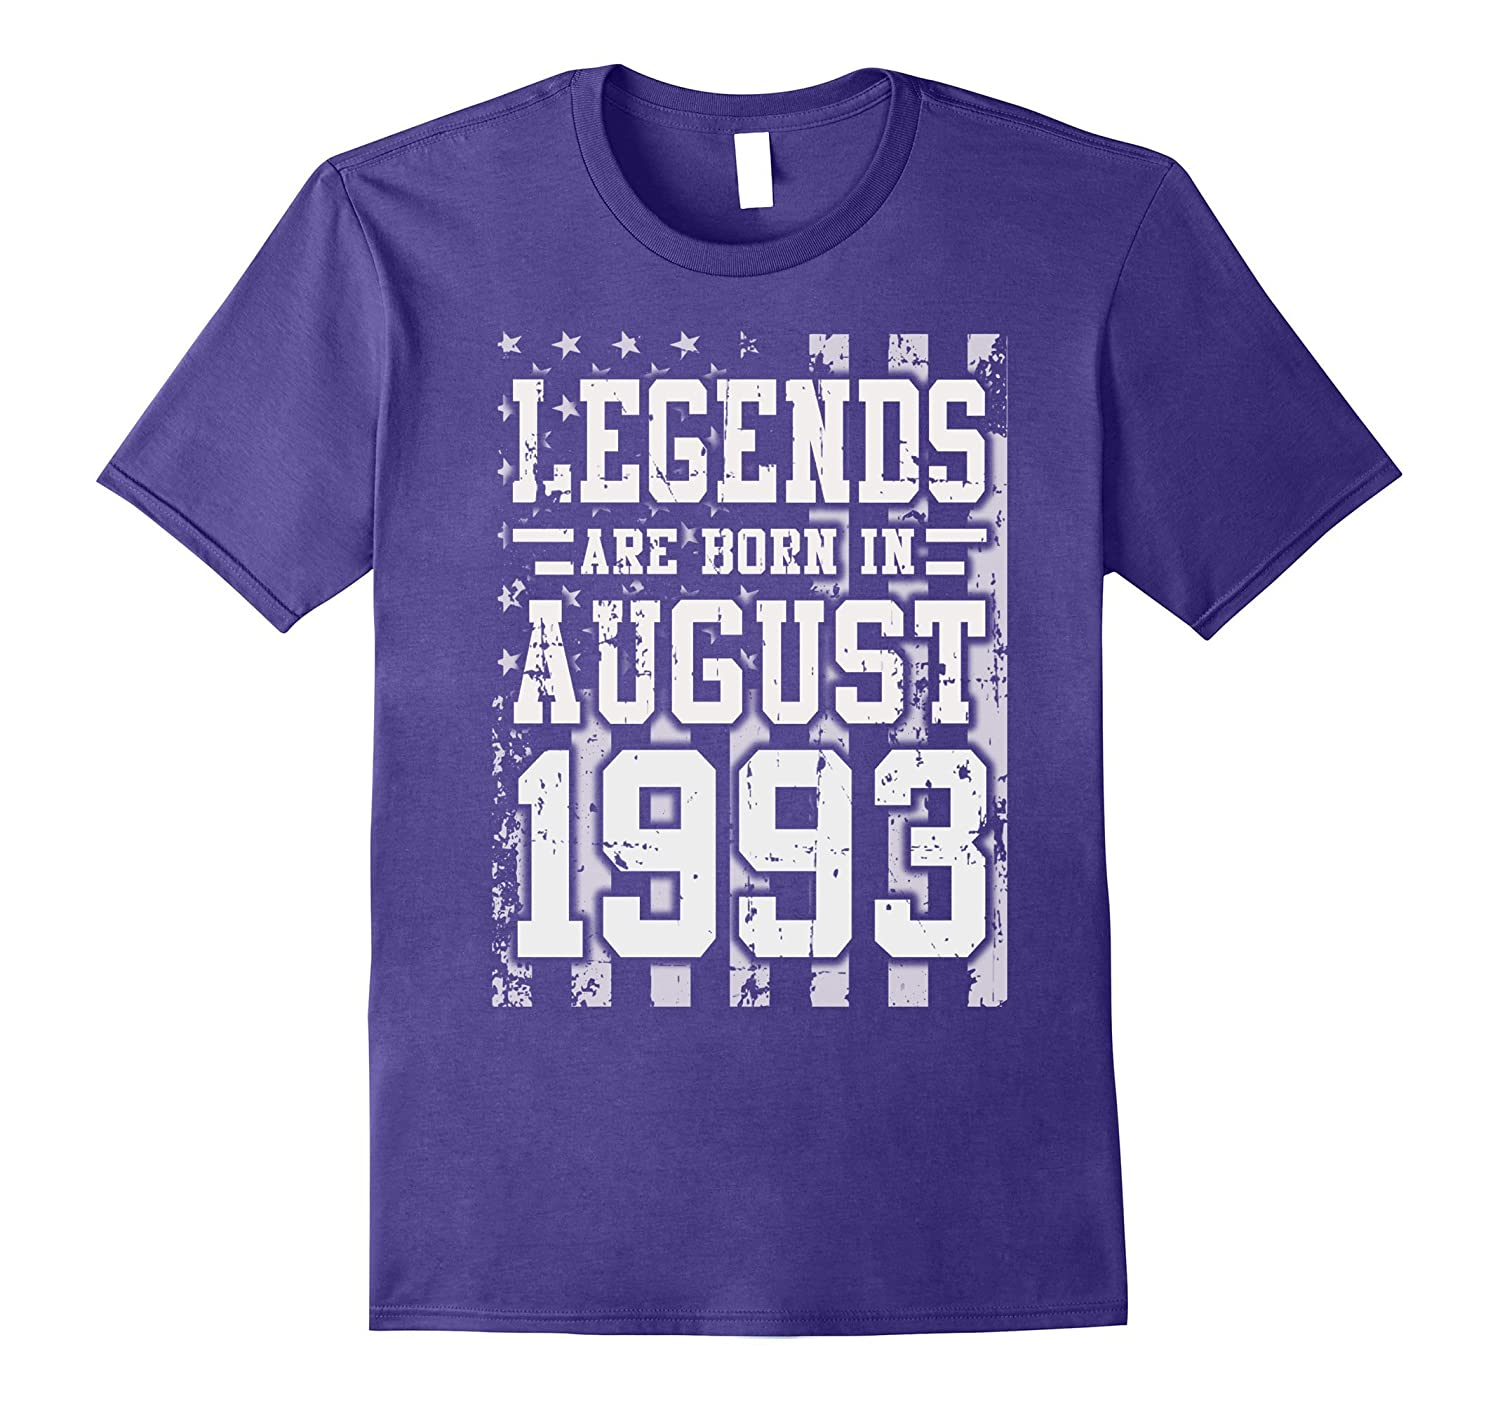 Legends Are Born In August 1993 Gift For 24 Yrs Years Old-Art